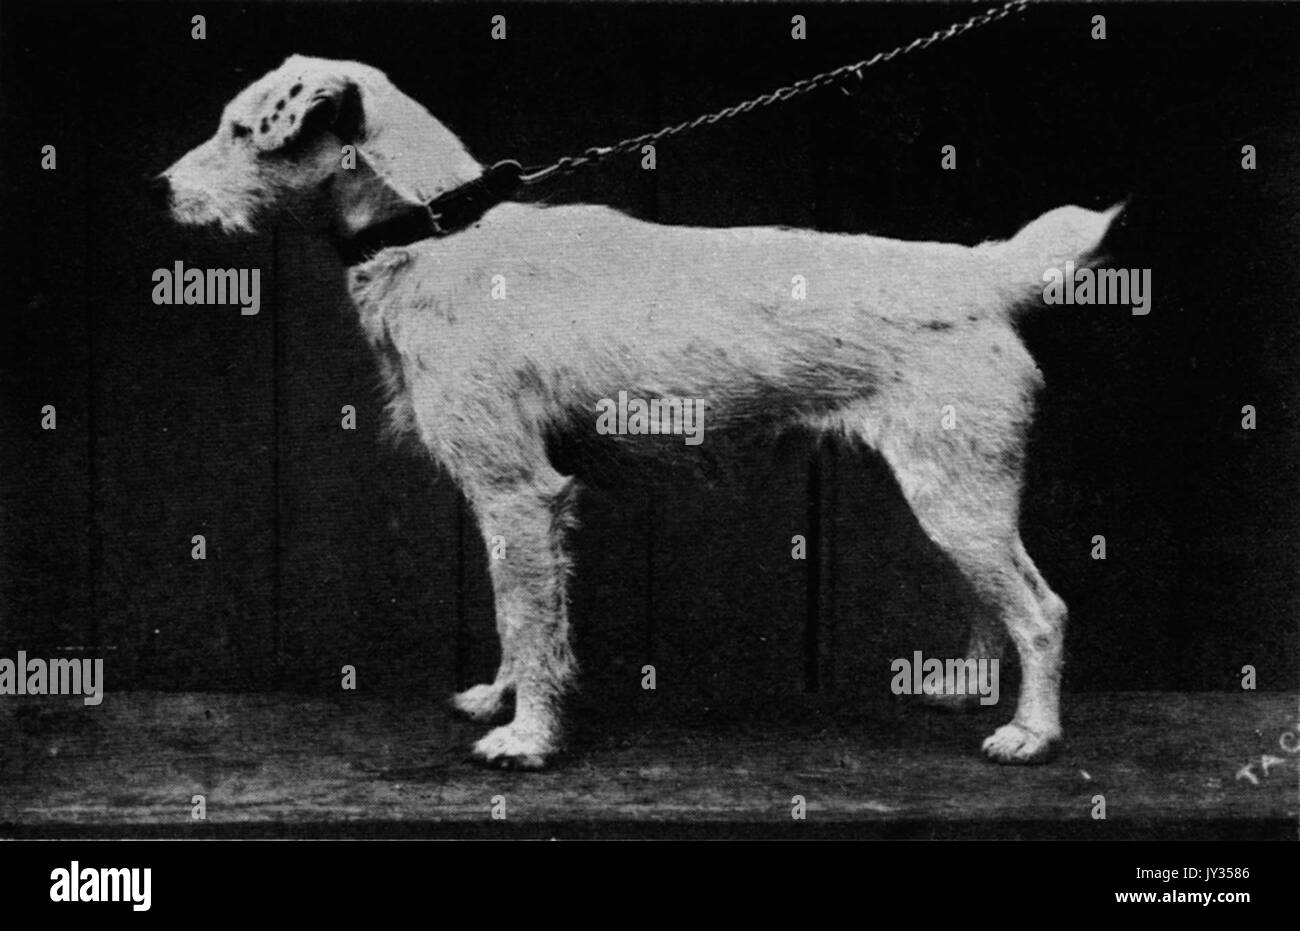 Carlisle Tack, a Fox terrier born in 1884, who was owned by John Russell - Stock Image